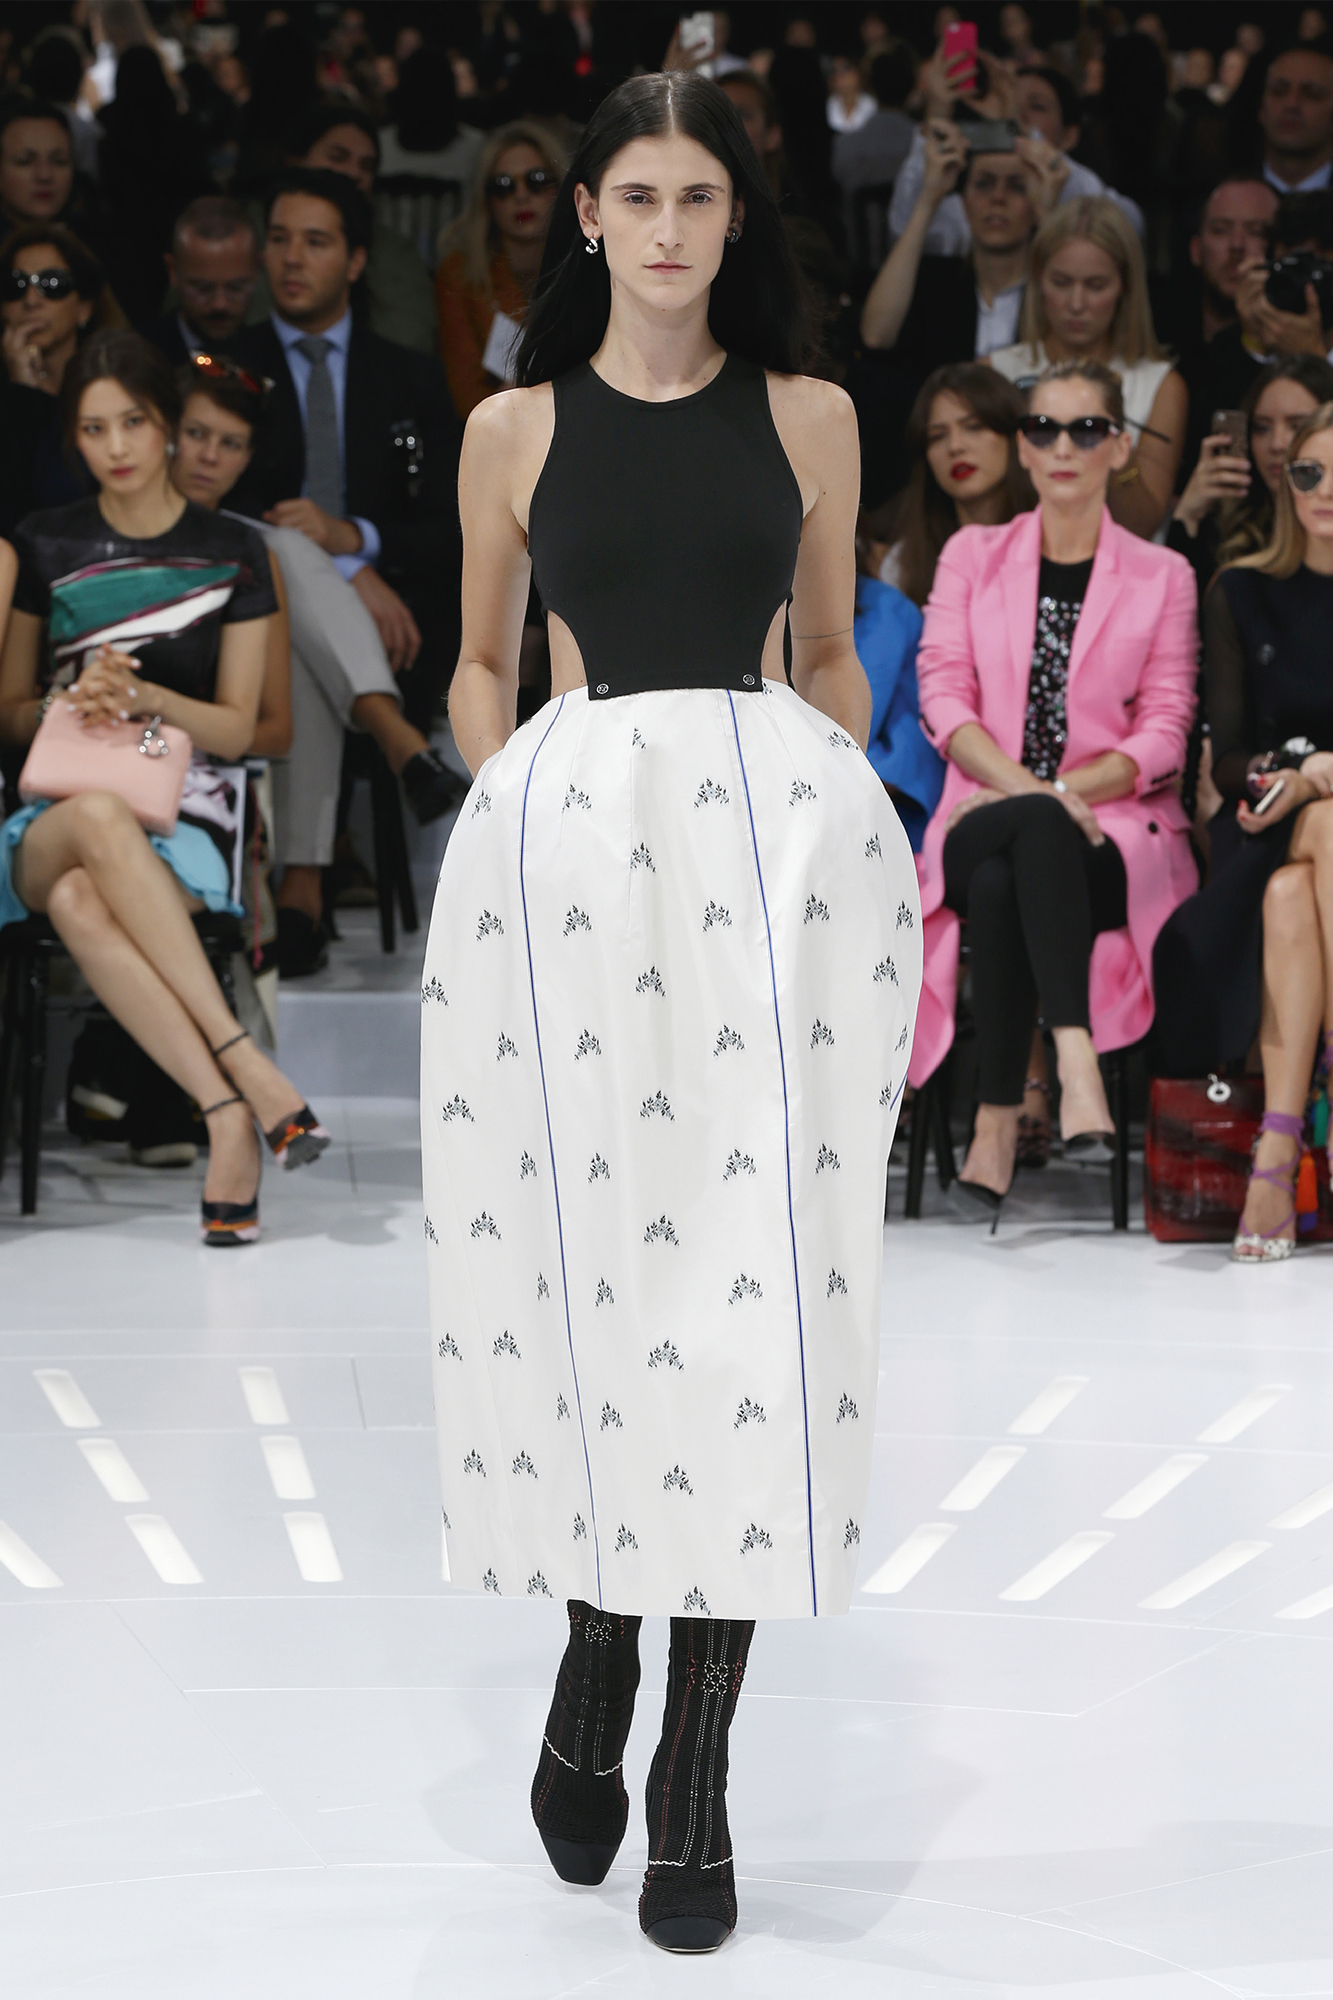 New Western Fashion Christian Dior Ready To Wear Dresses Spring Summer Collection 2015  (8)